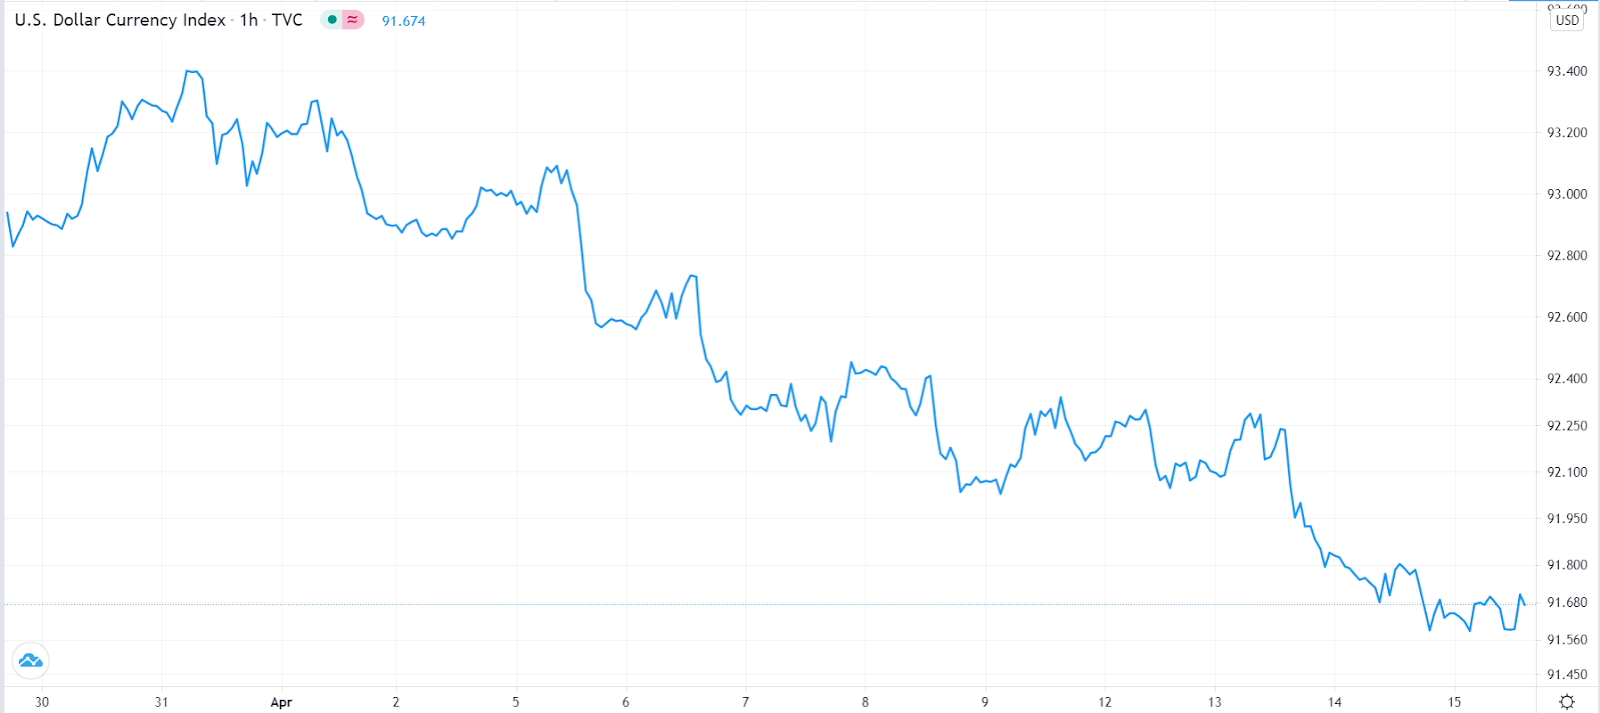 US dollar index pressured even after strong retail sales